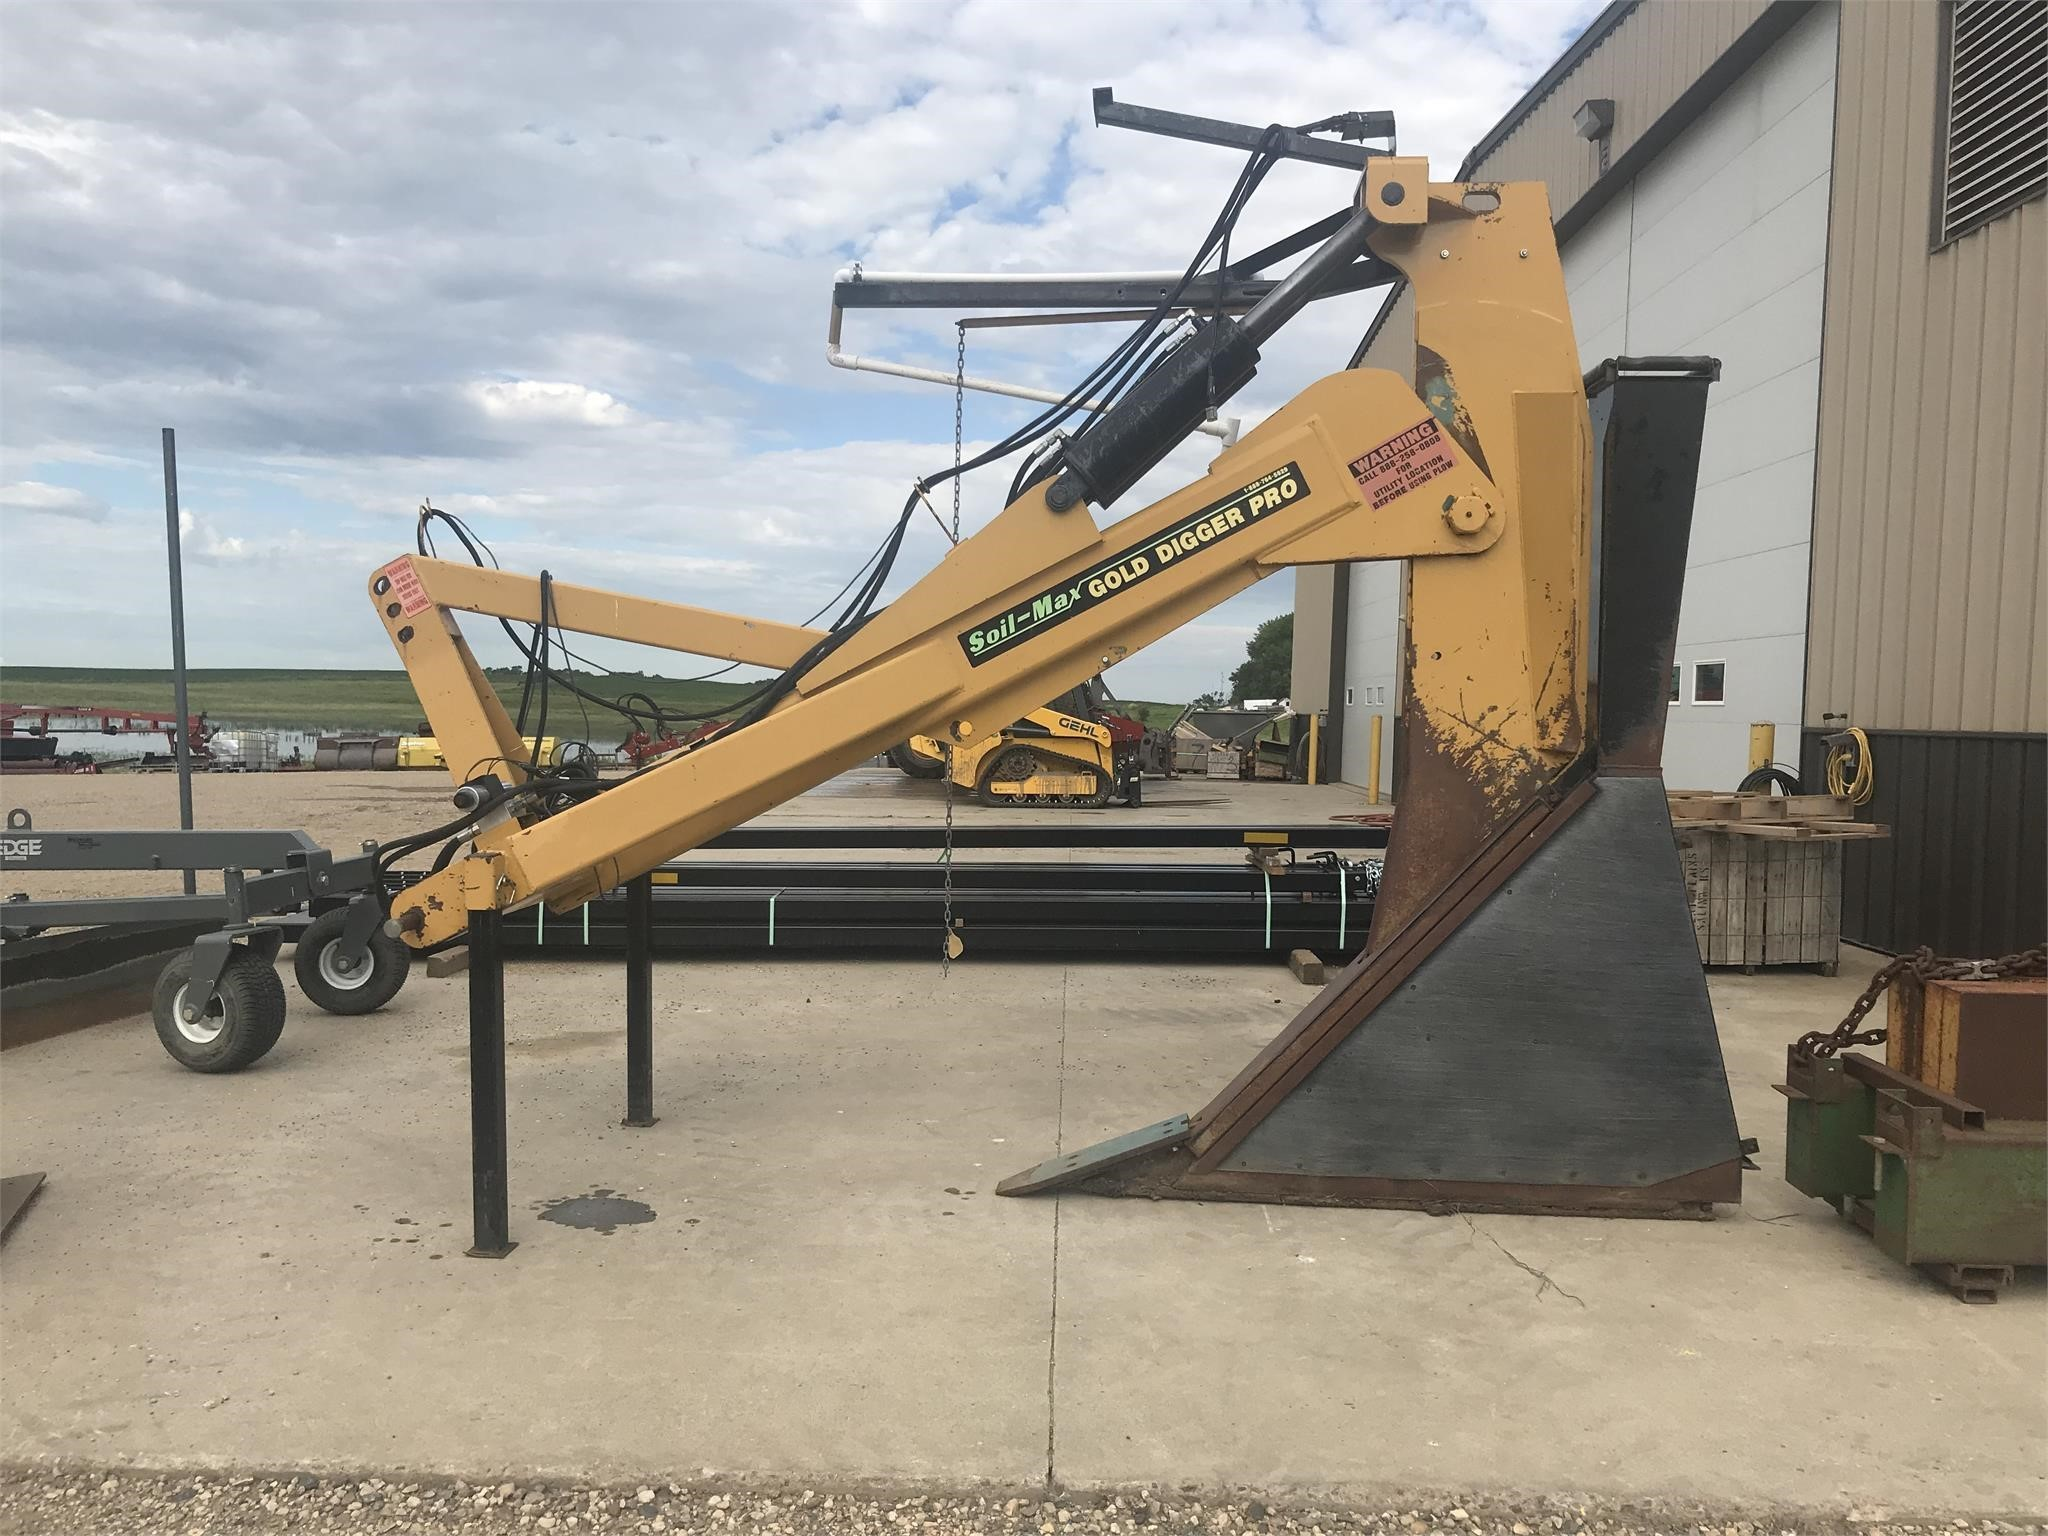 Soil Max gold digger pro Field Drainage Equipment